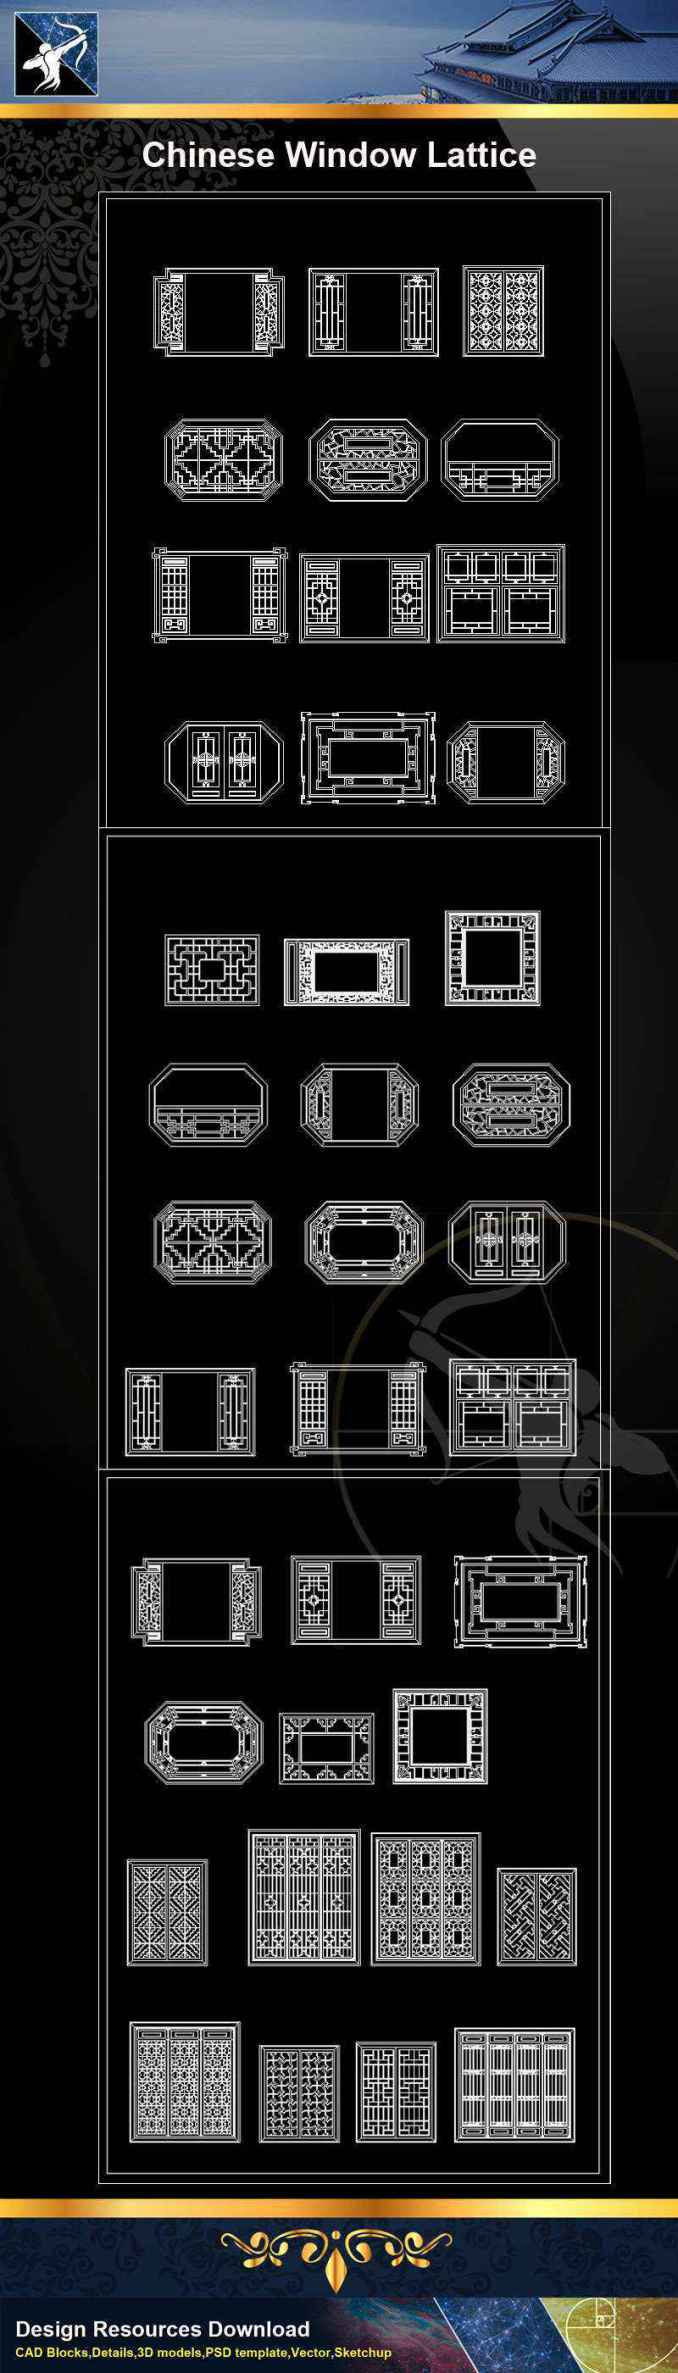 ★【Chinese Window Lattice CAD Blocks】@Autocad Blocks,Drawings,CAD  Details,Elevation